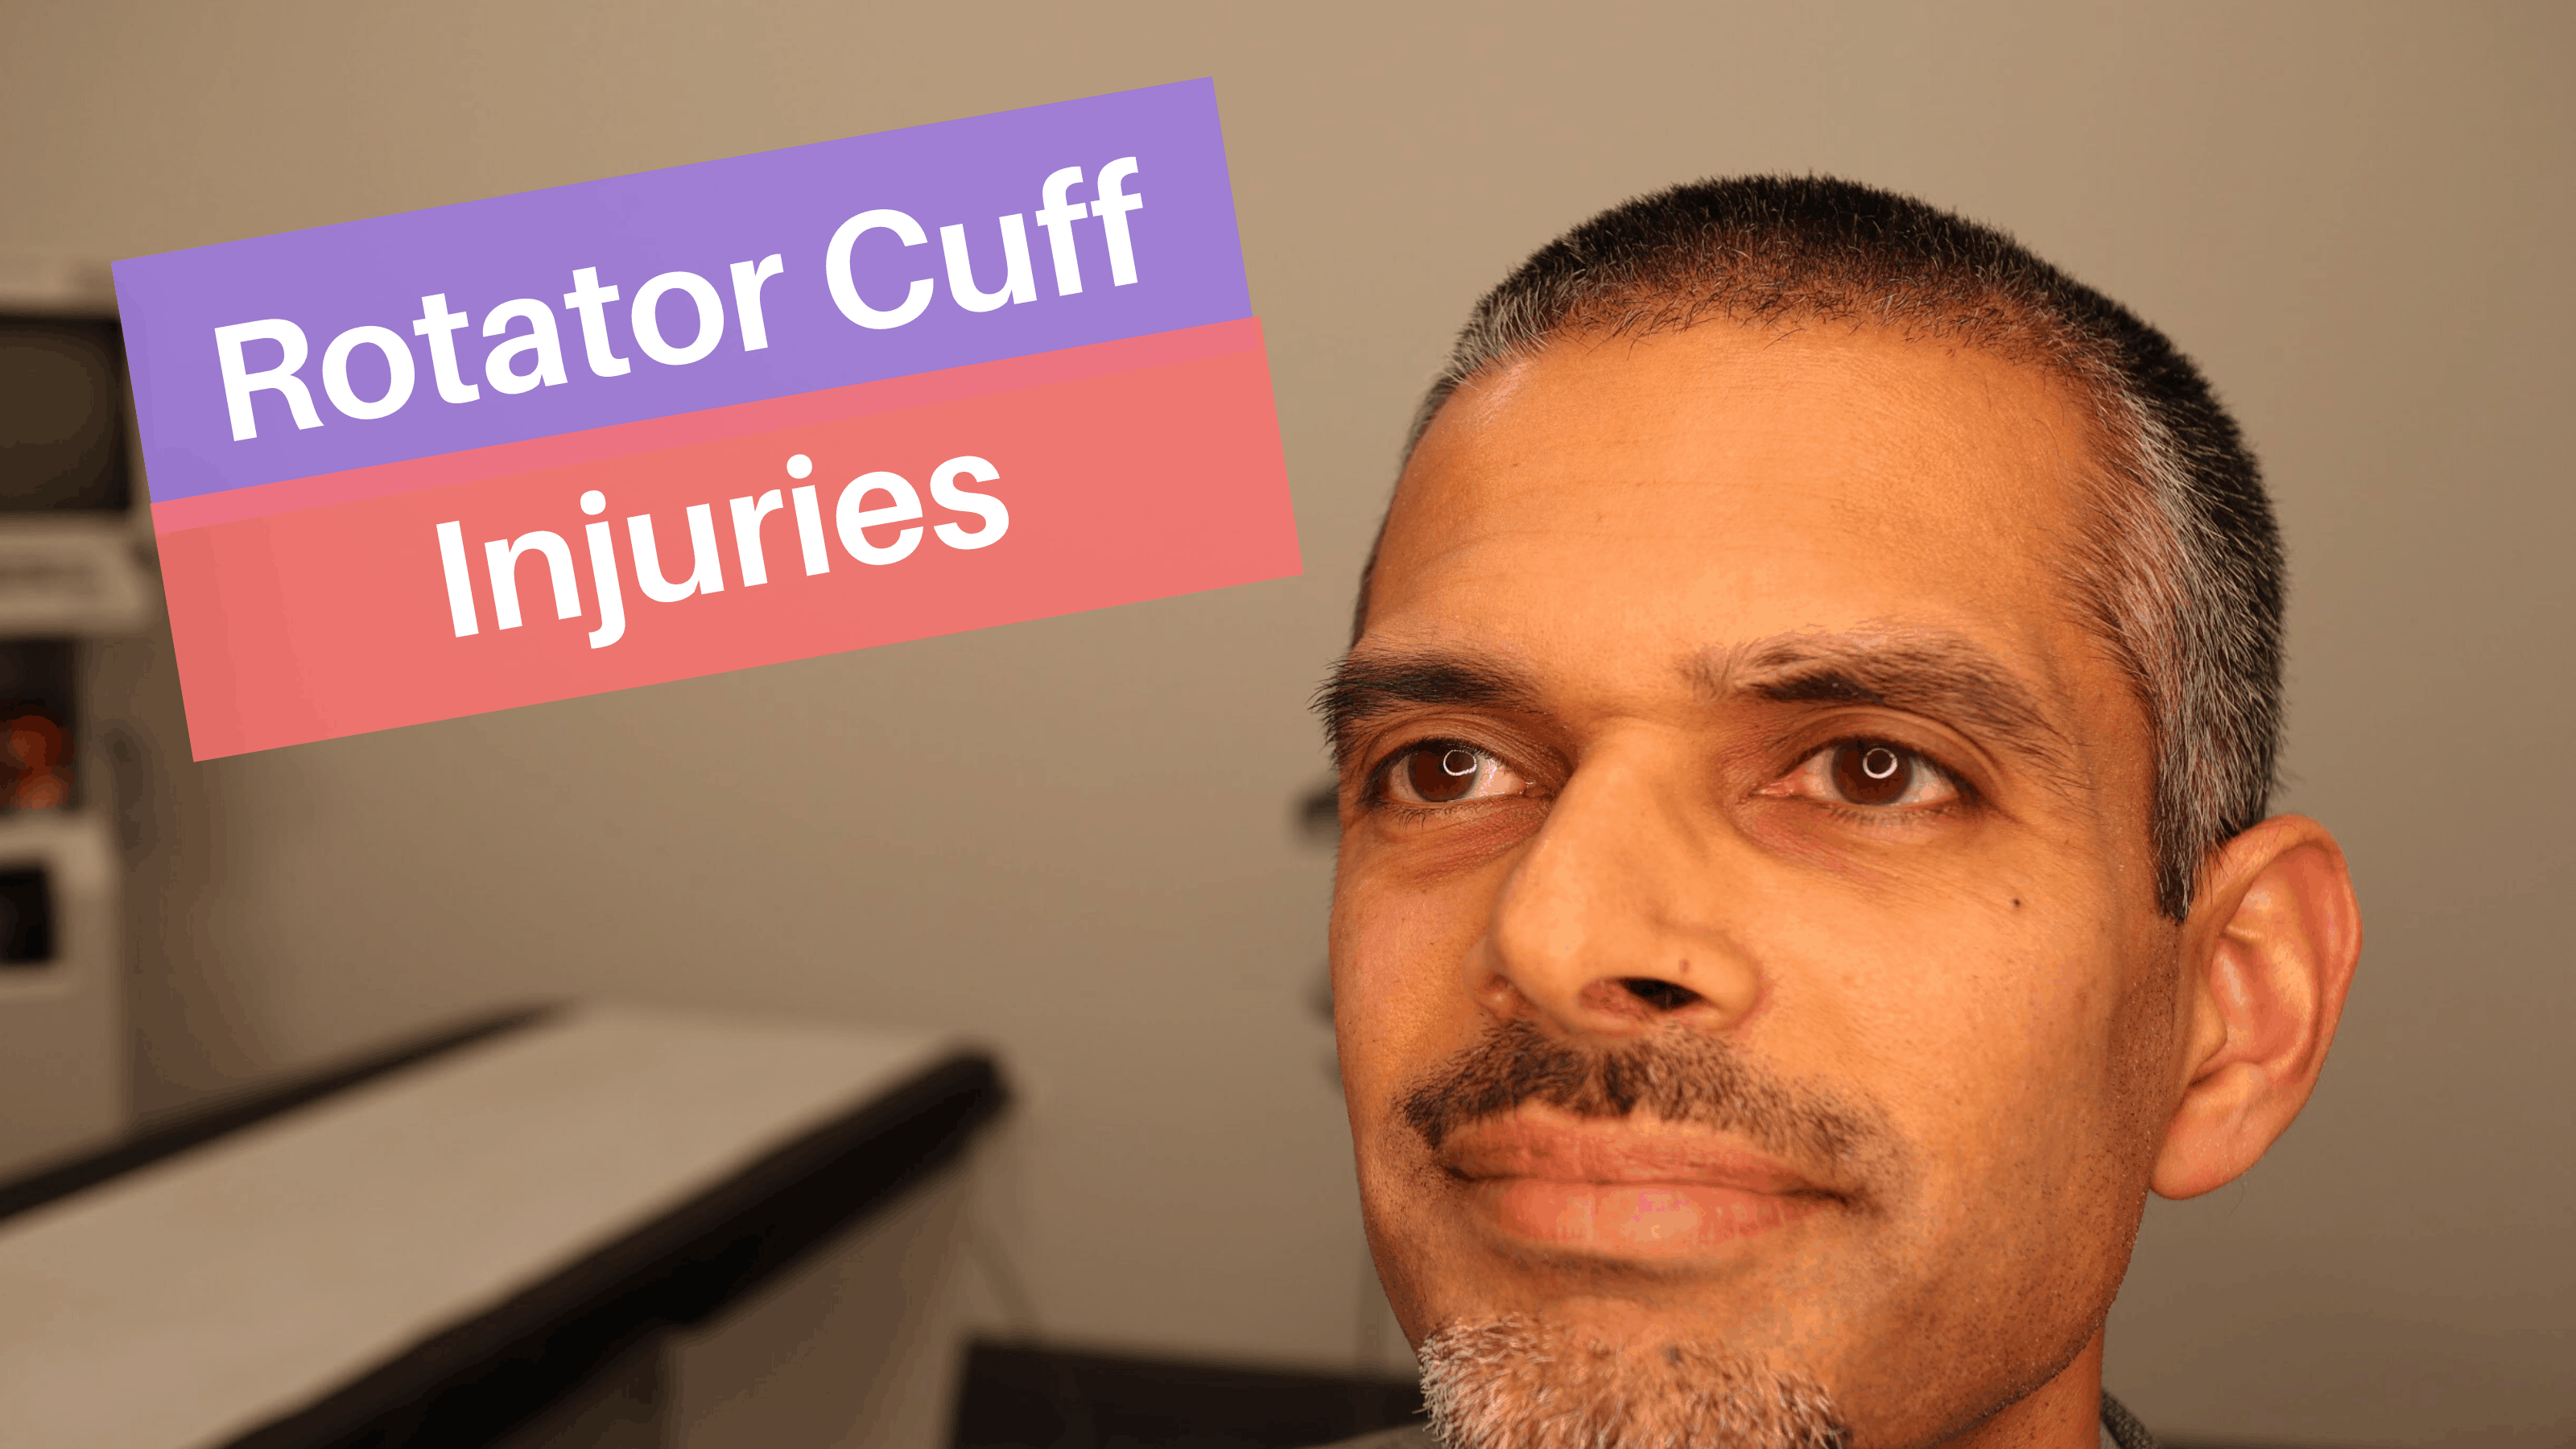 Rotator cuff injury- What is the rotator cuff?